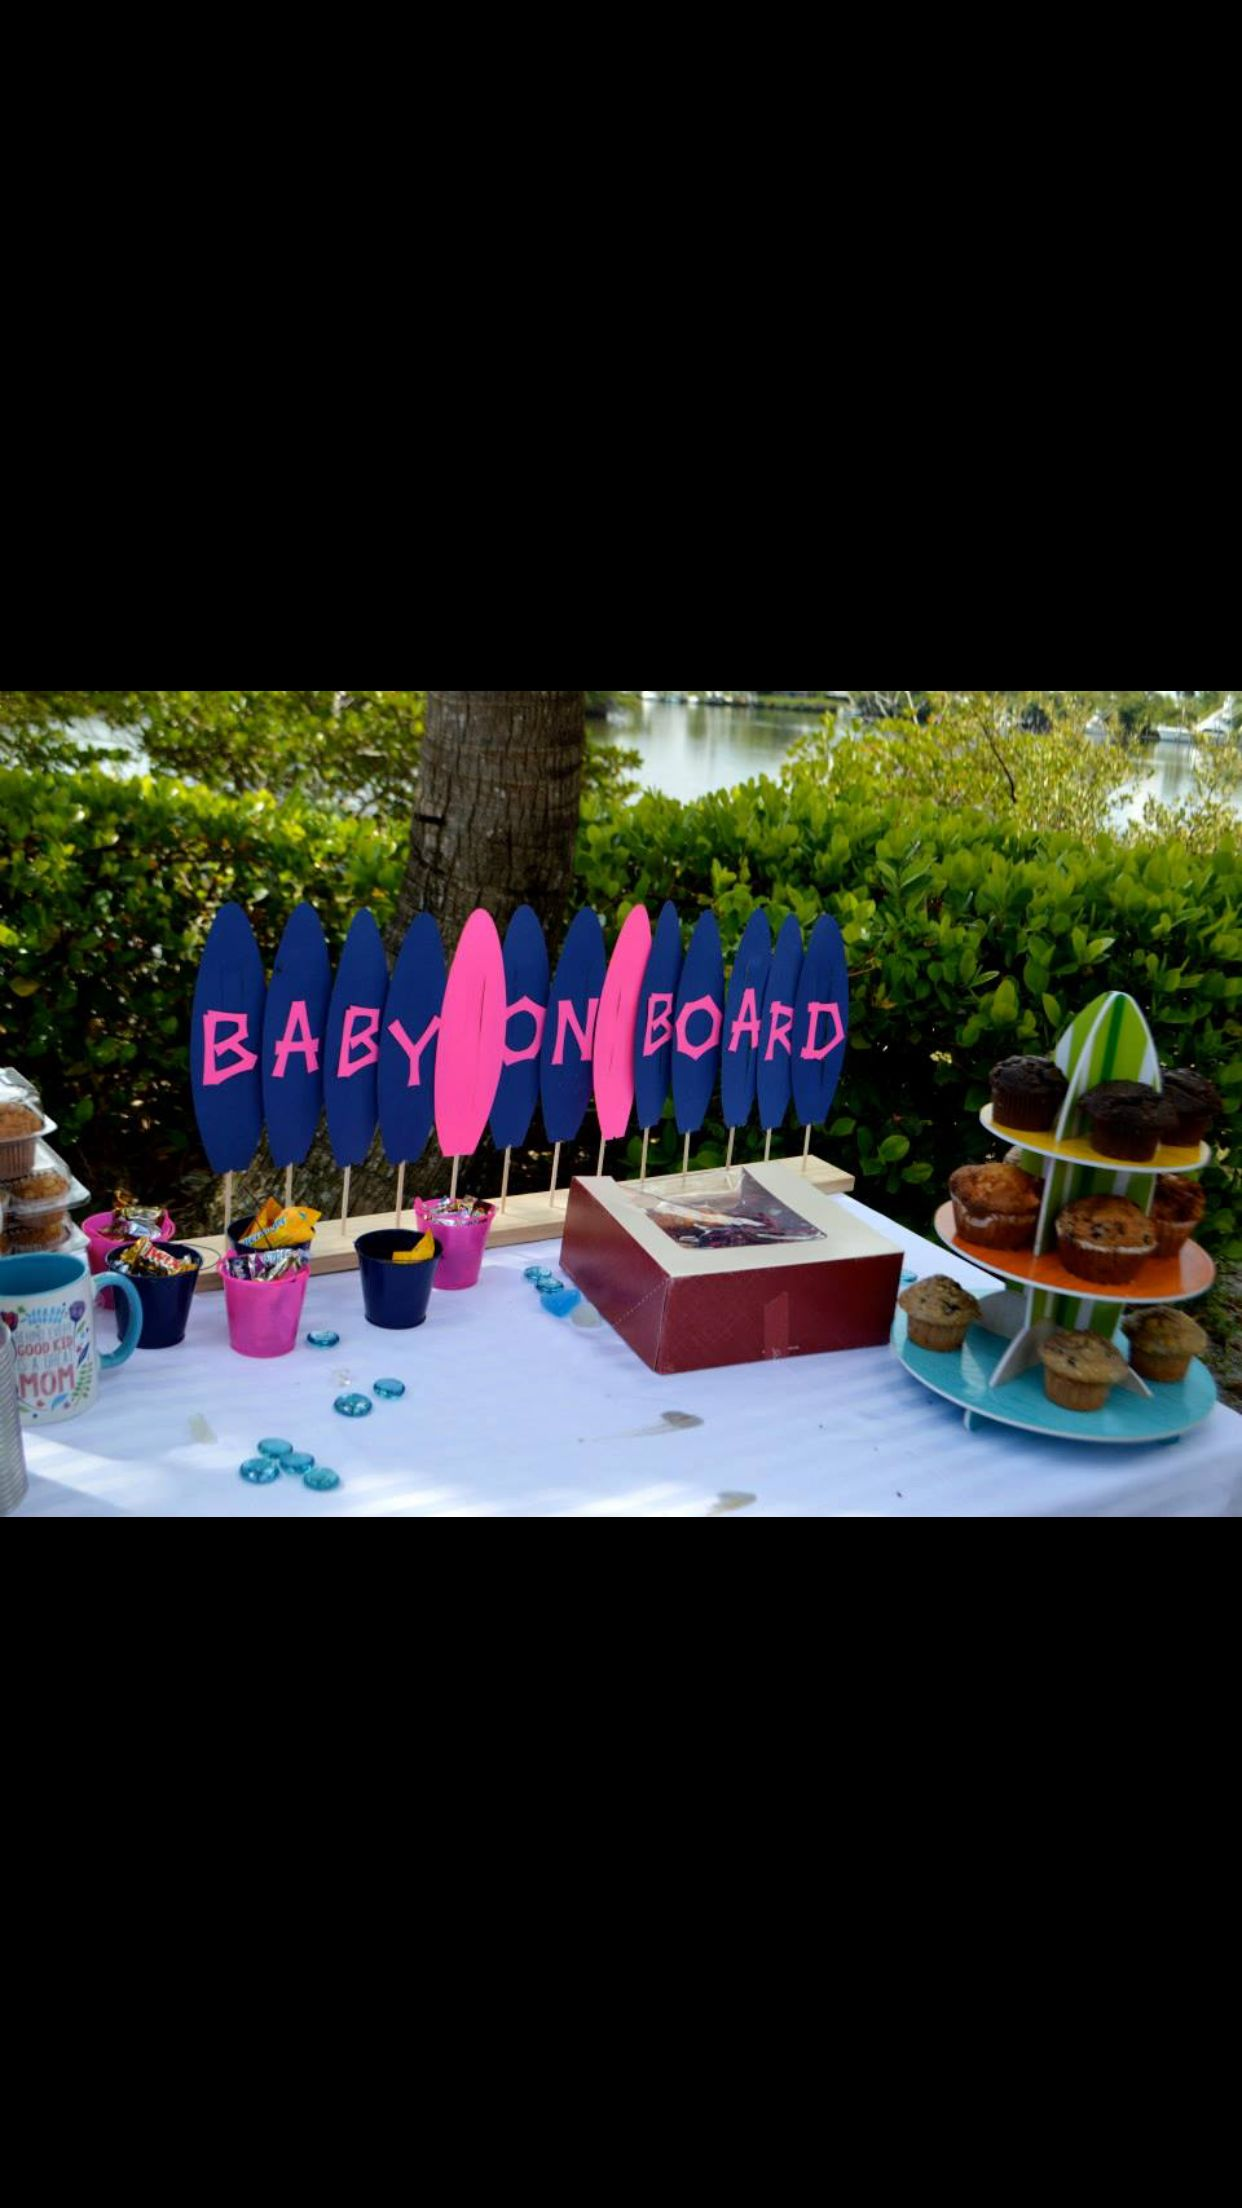 Baby on board gender reveal surf cricur life s a beach